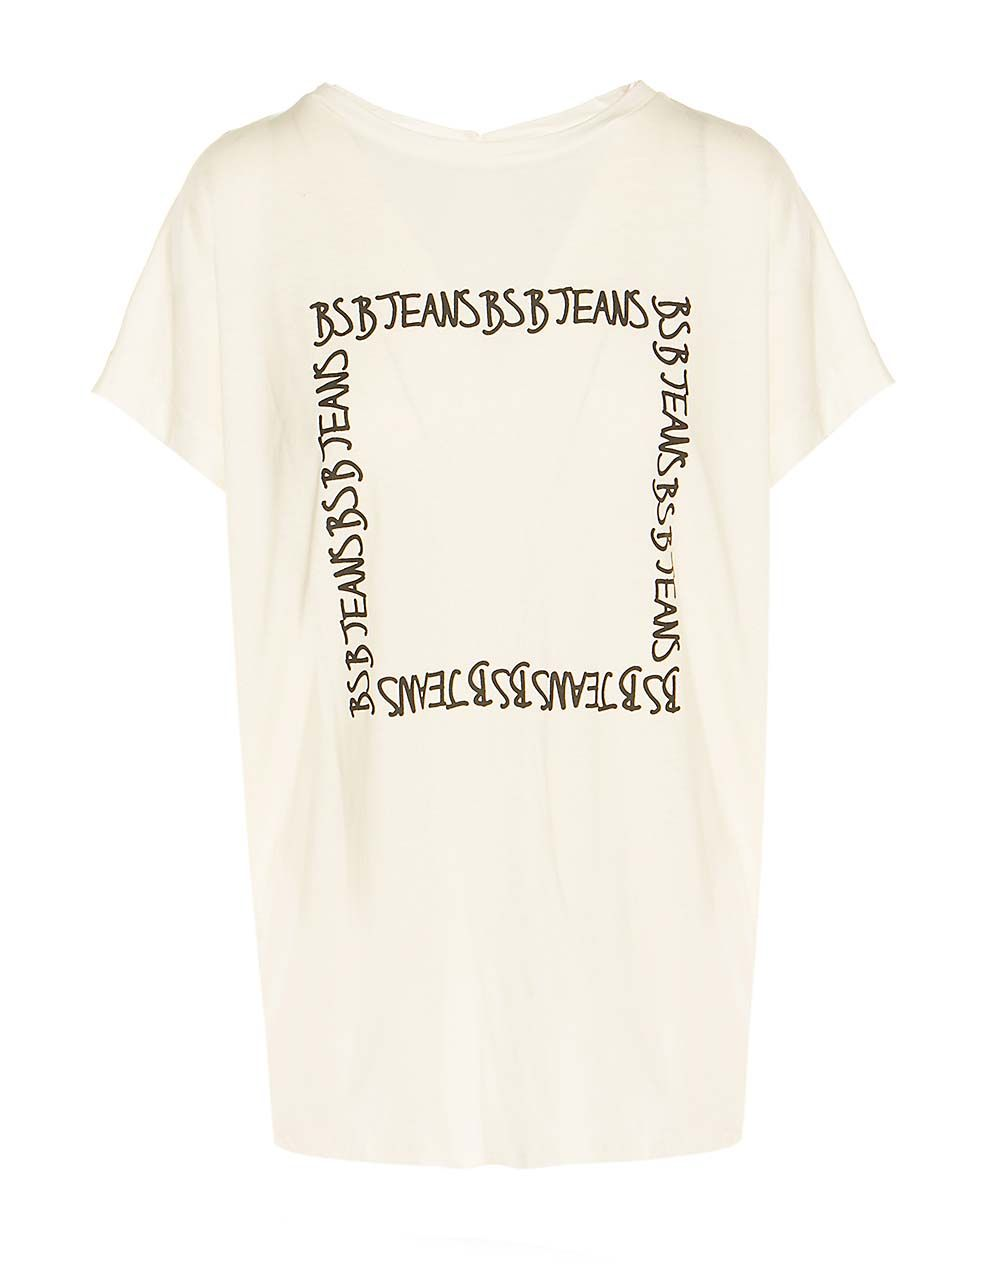 T-SHIRT WITH FRONT PRINT - TOGETHERLAND